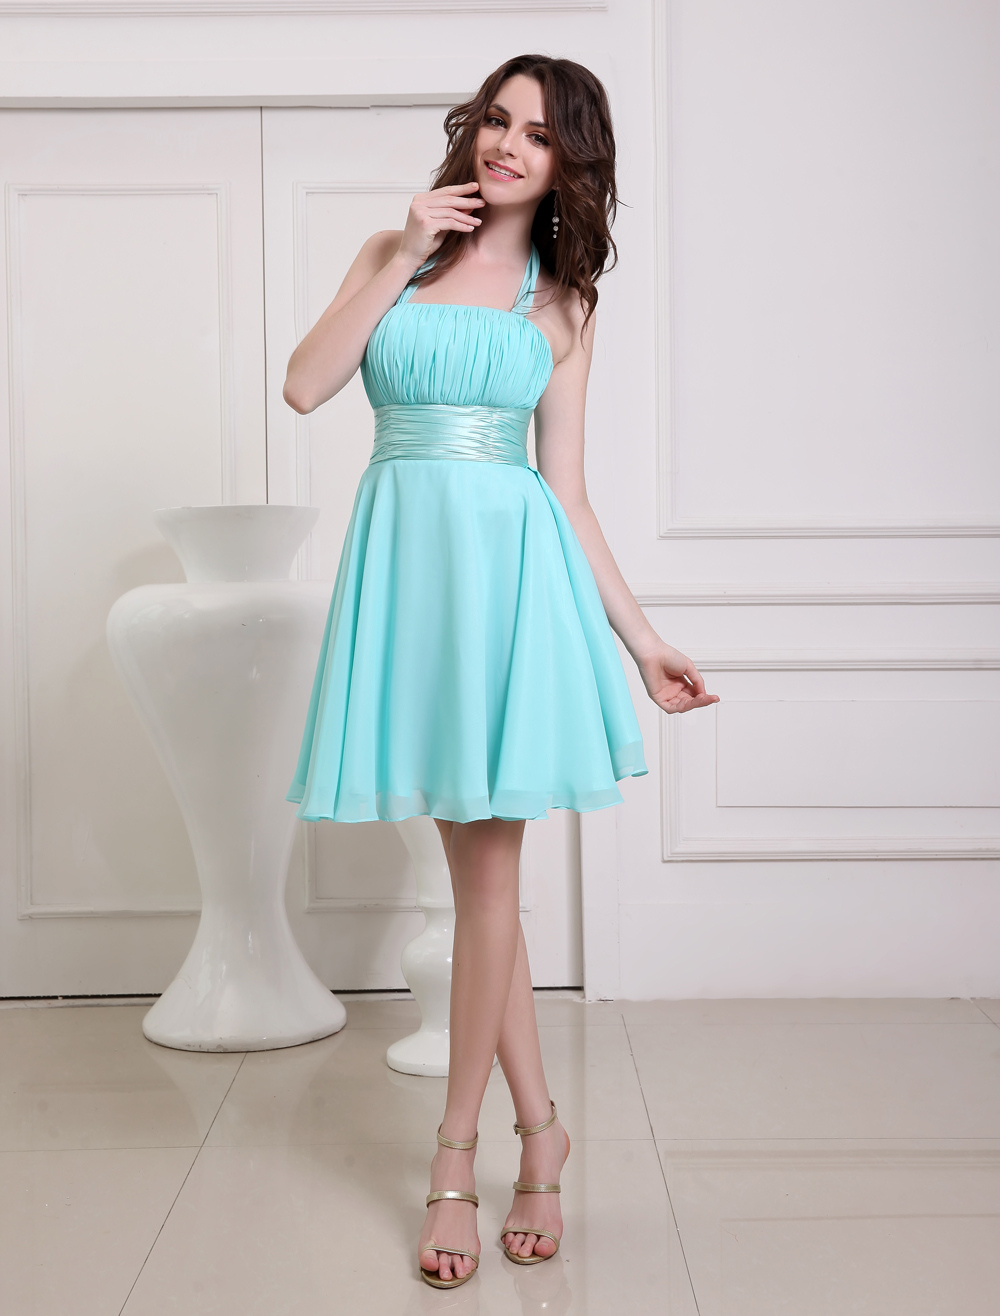 Ocean Blue Prom Dress Straps Sash Lace Up Bow Chiffon Dress